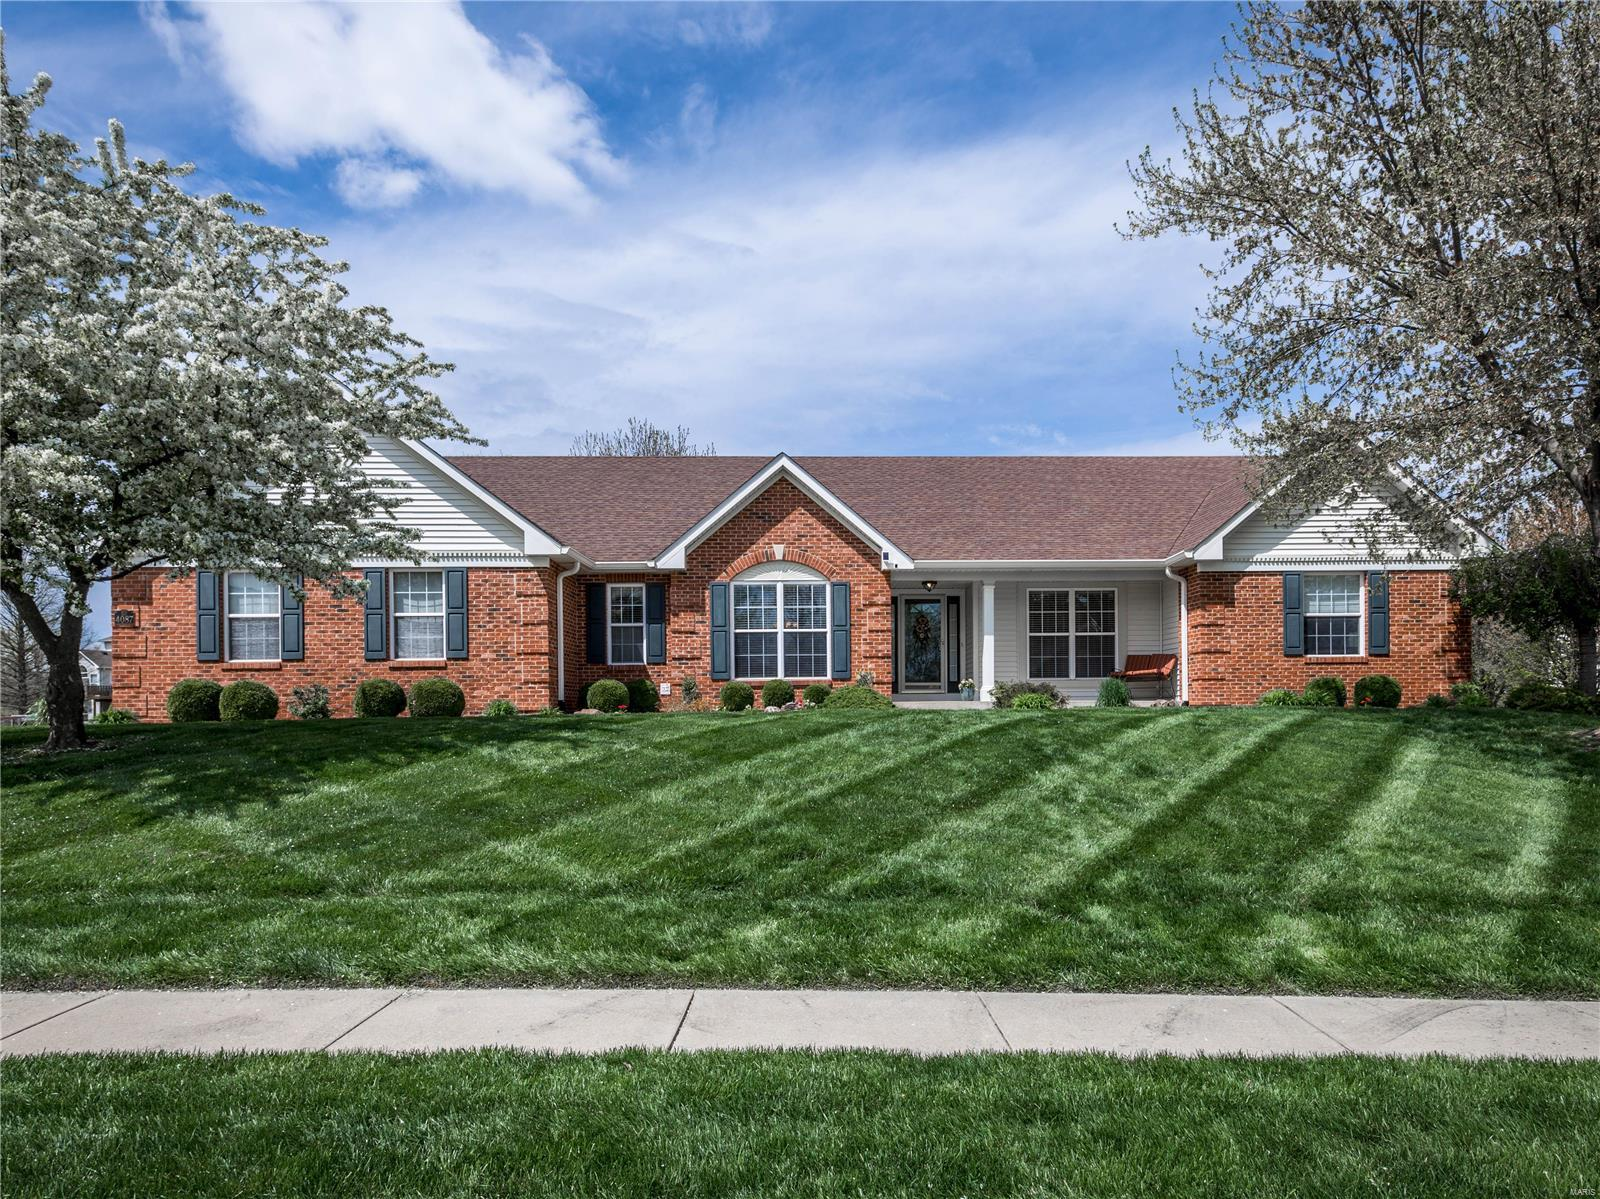 4087 Redcastle Drive Property Photo - Swansea, IL real estate listing